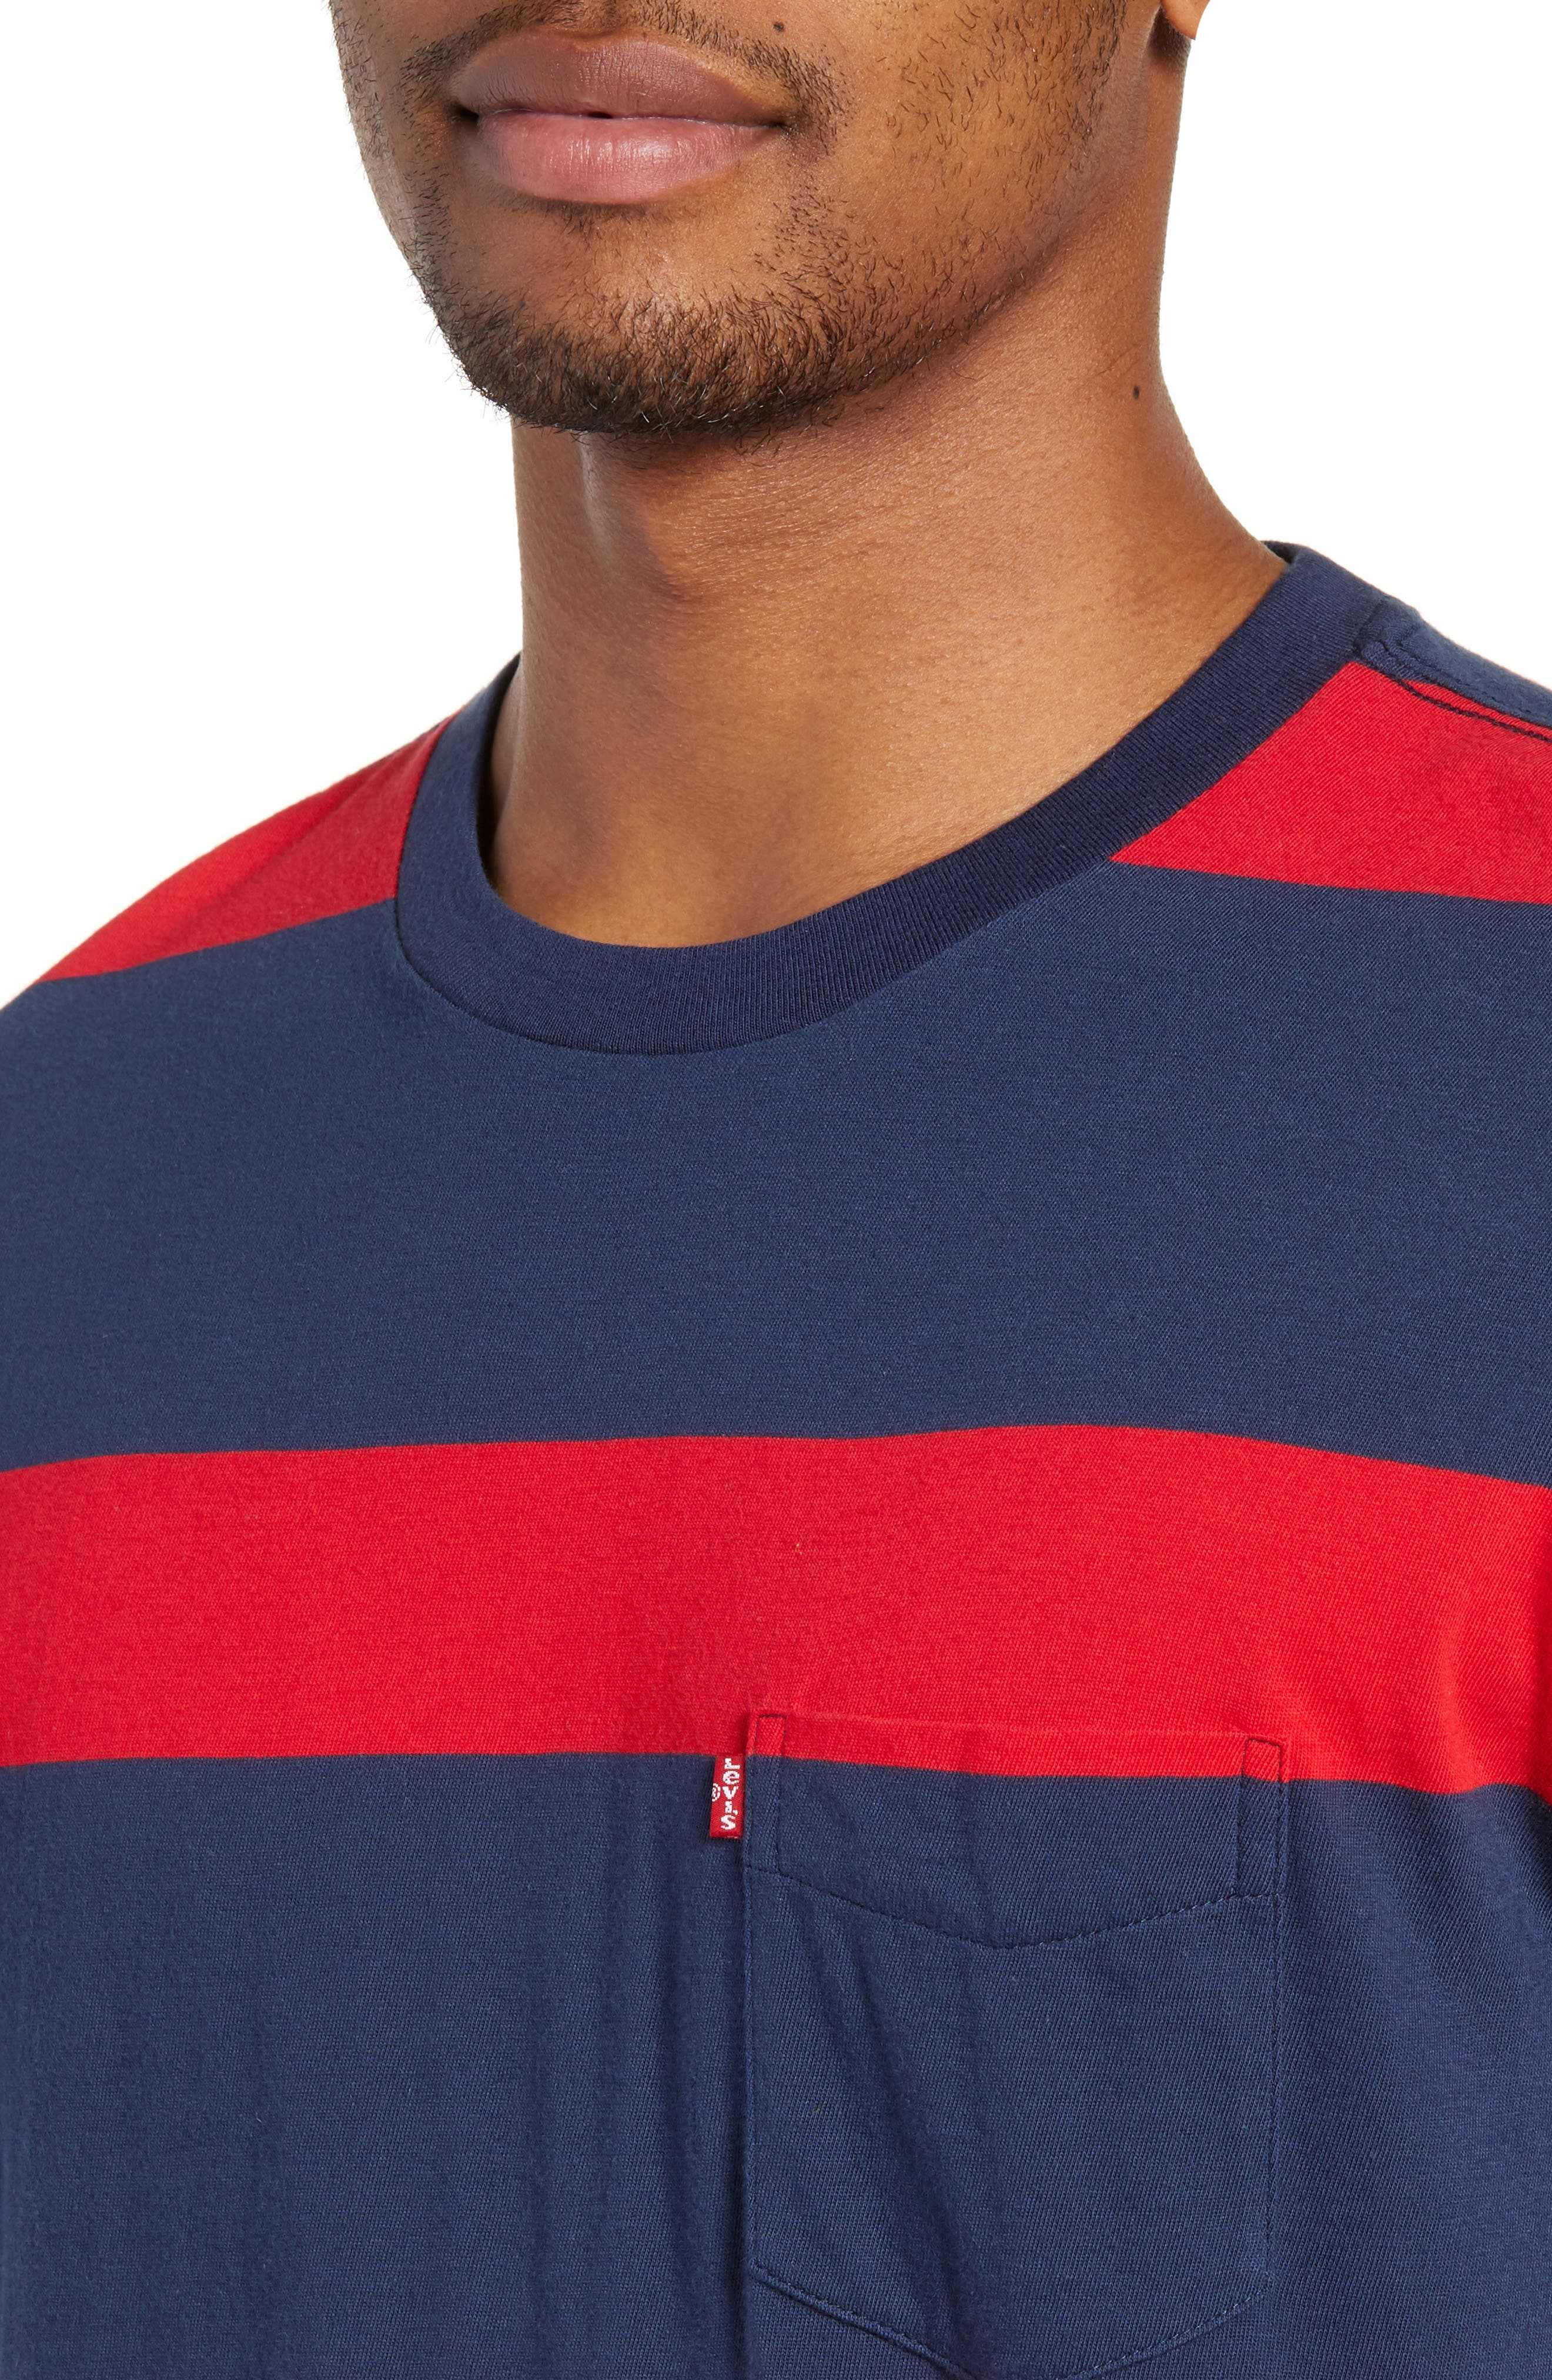 Stripe Pocket T-Shirt,                             Alternate thumbnail 4, color,                             DRESS BLUES/ CRIMSON STRIPES